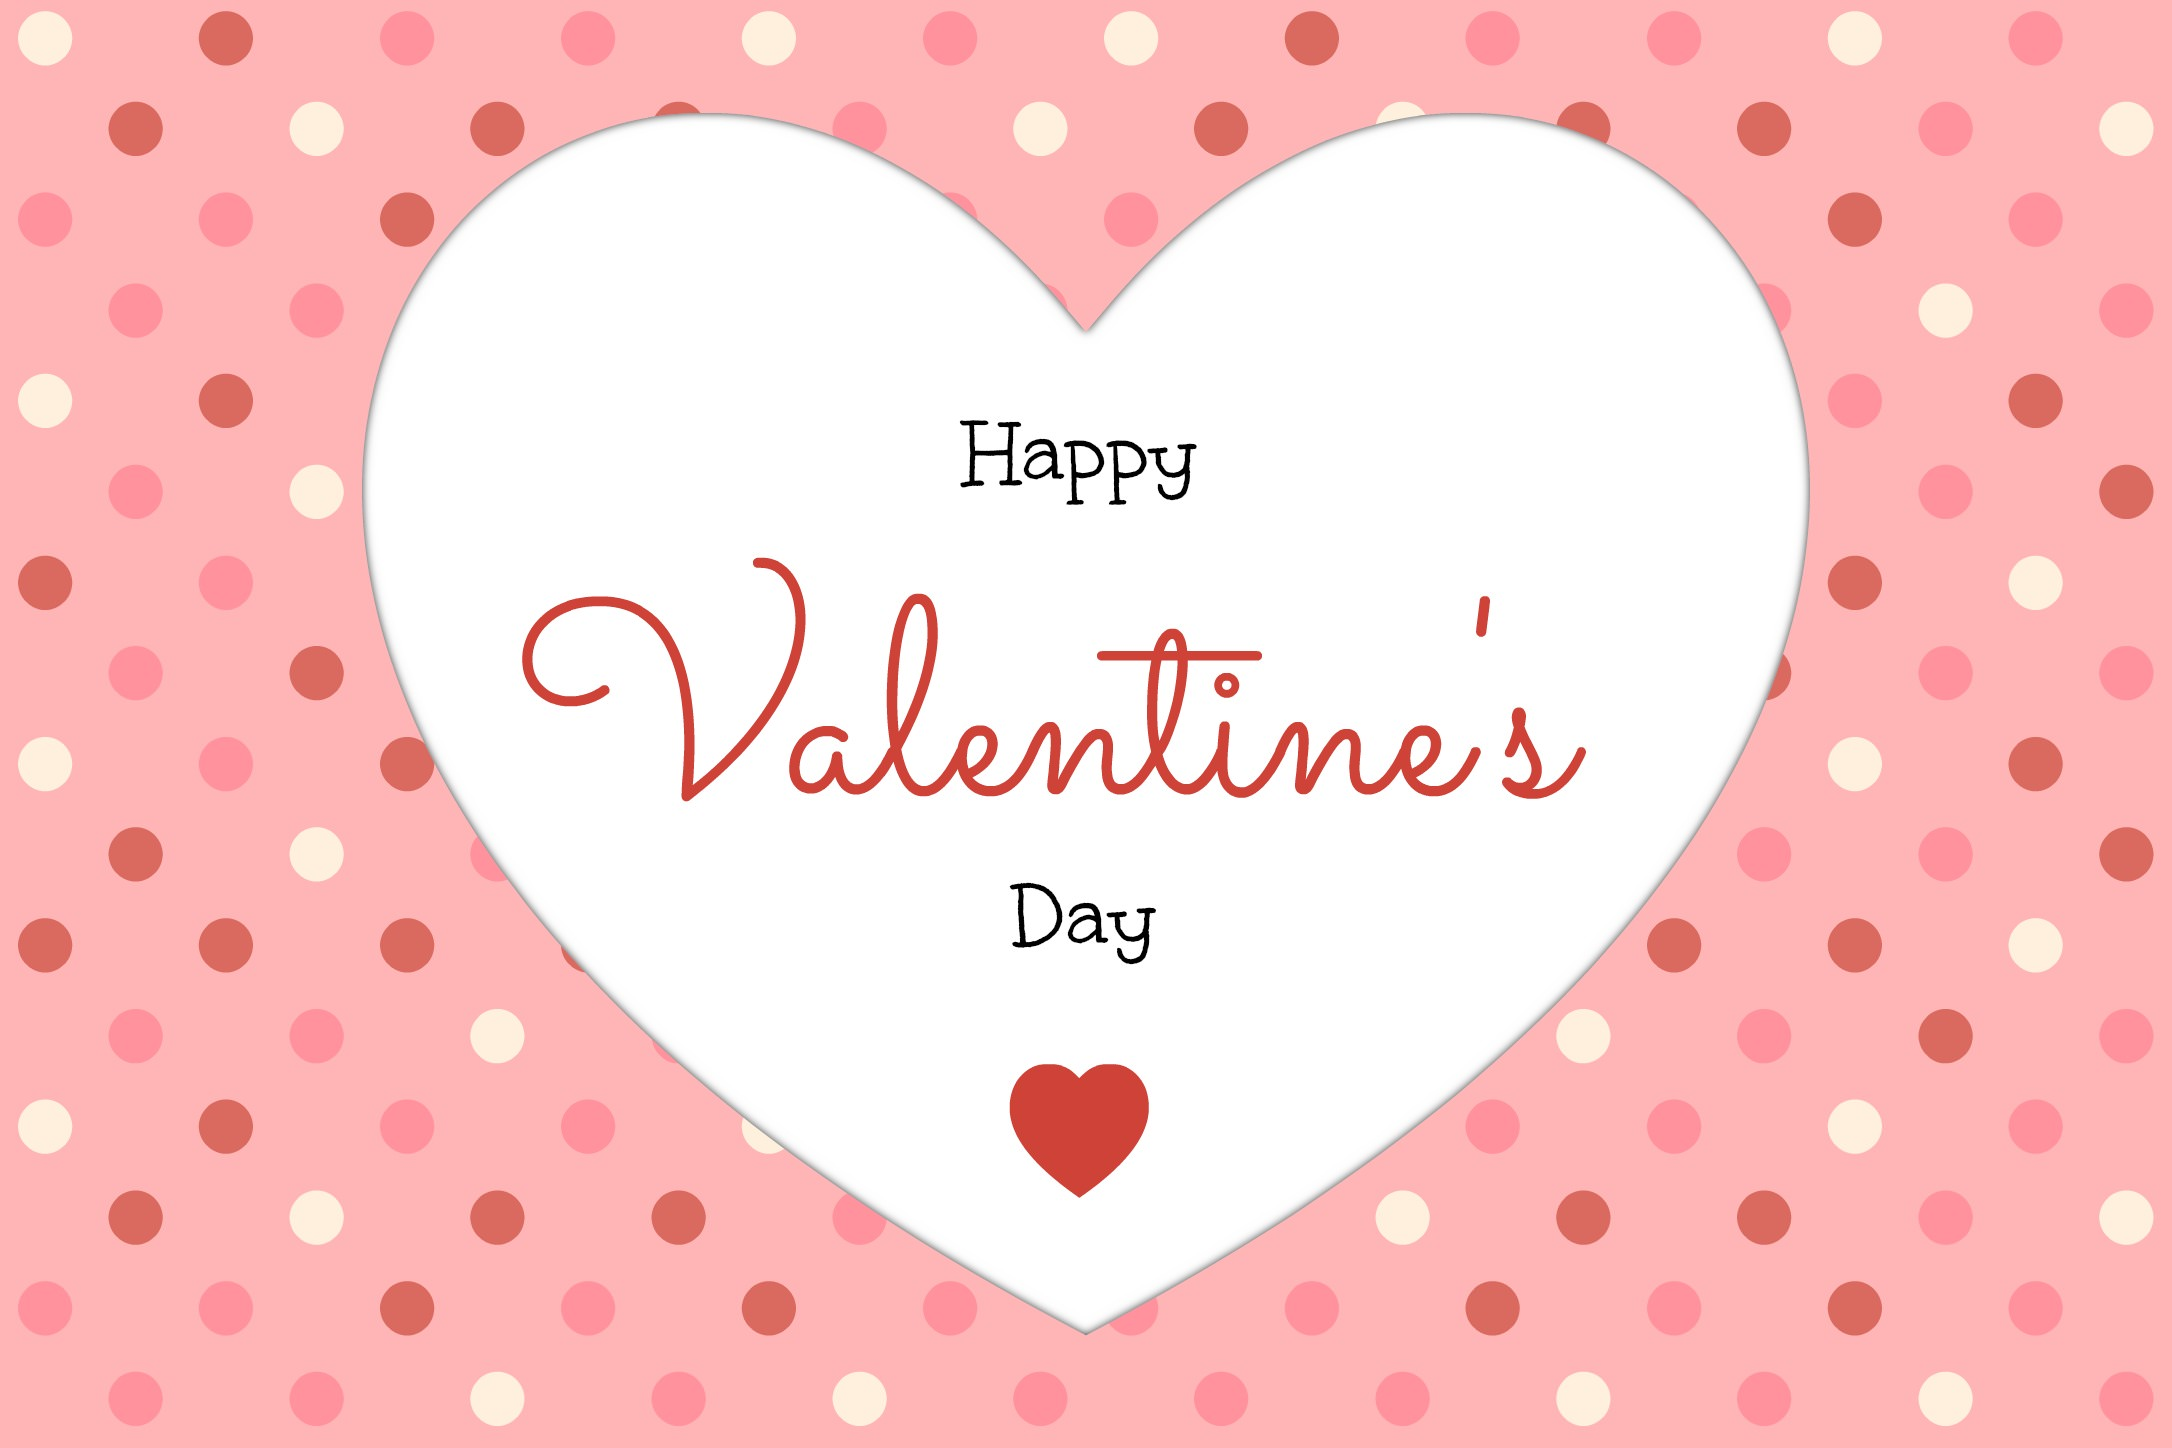 Cute Happy Valentine Day Wallpapers   Top Cute Happy 2172x1448